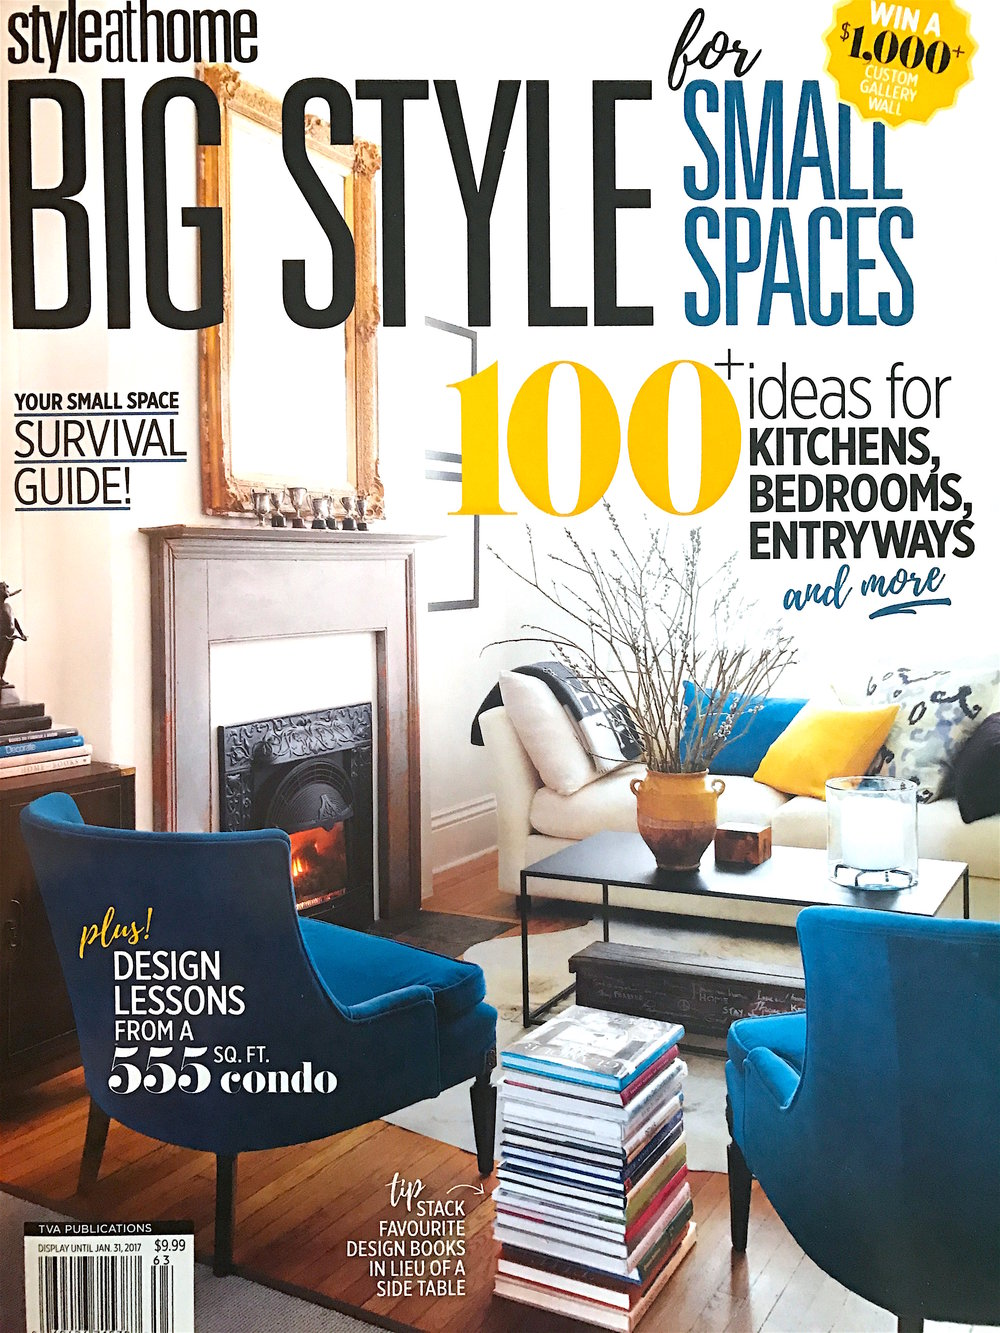 Chrissy U0026amp; Co Featured In Big Style For Small Spaces 2016. Design By  Chrissy